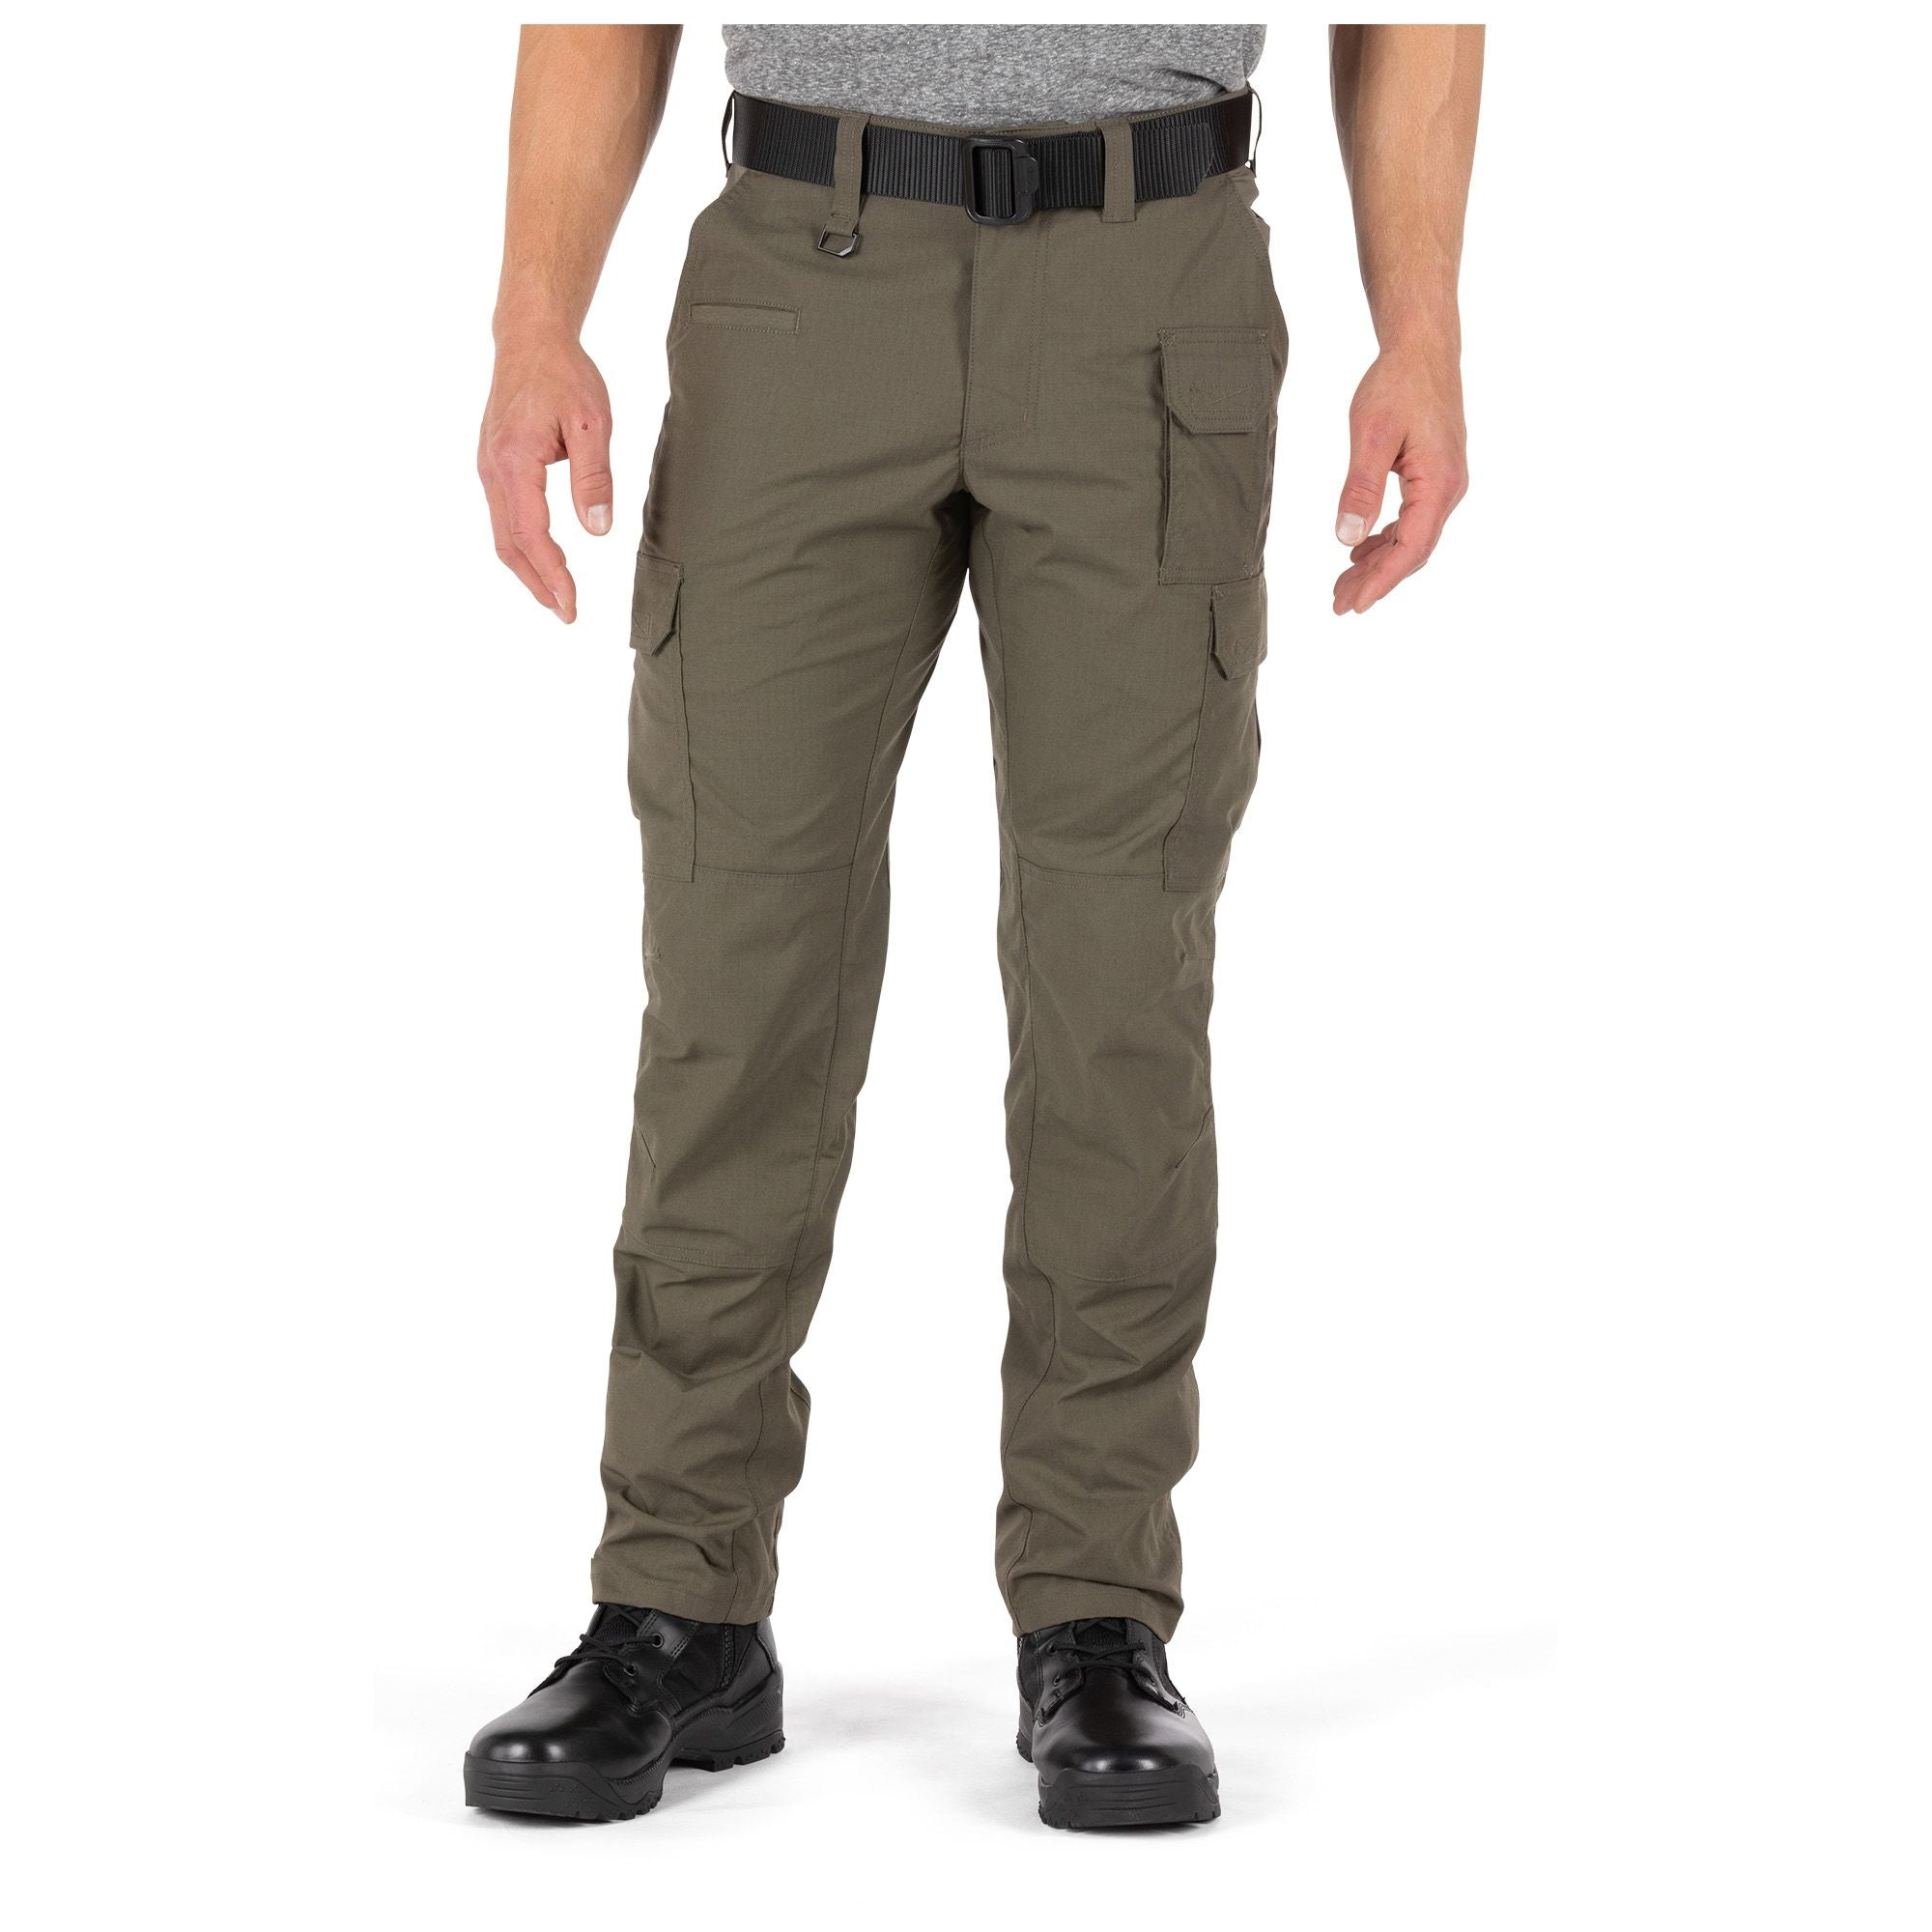 5.11 Tactical ABR™ Pro Pant - Black & Ranger Green - red-diamond-uniform-police-supply